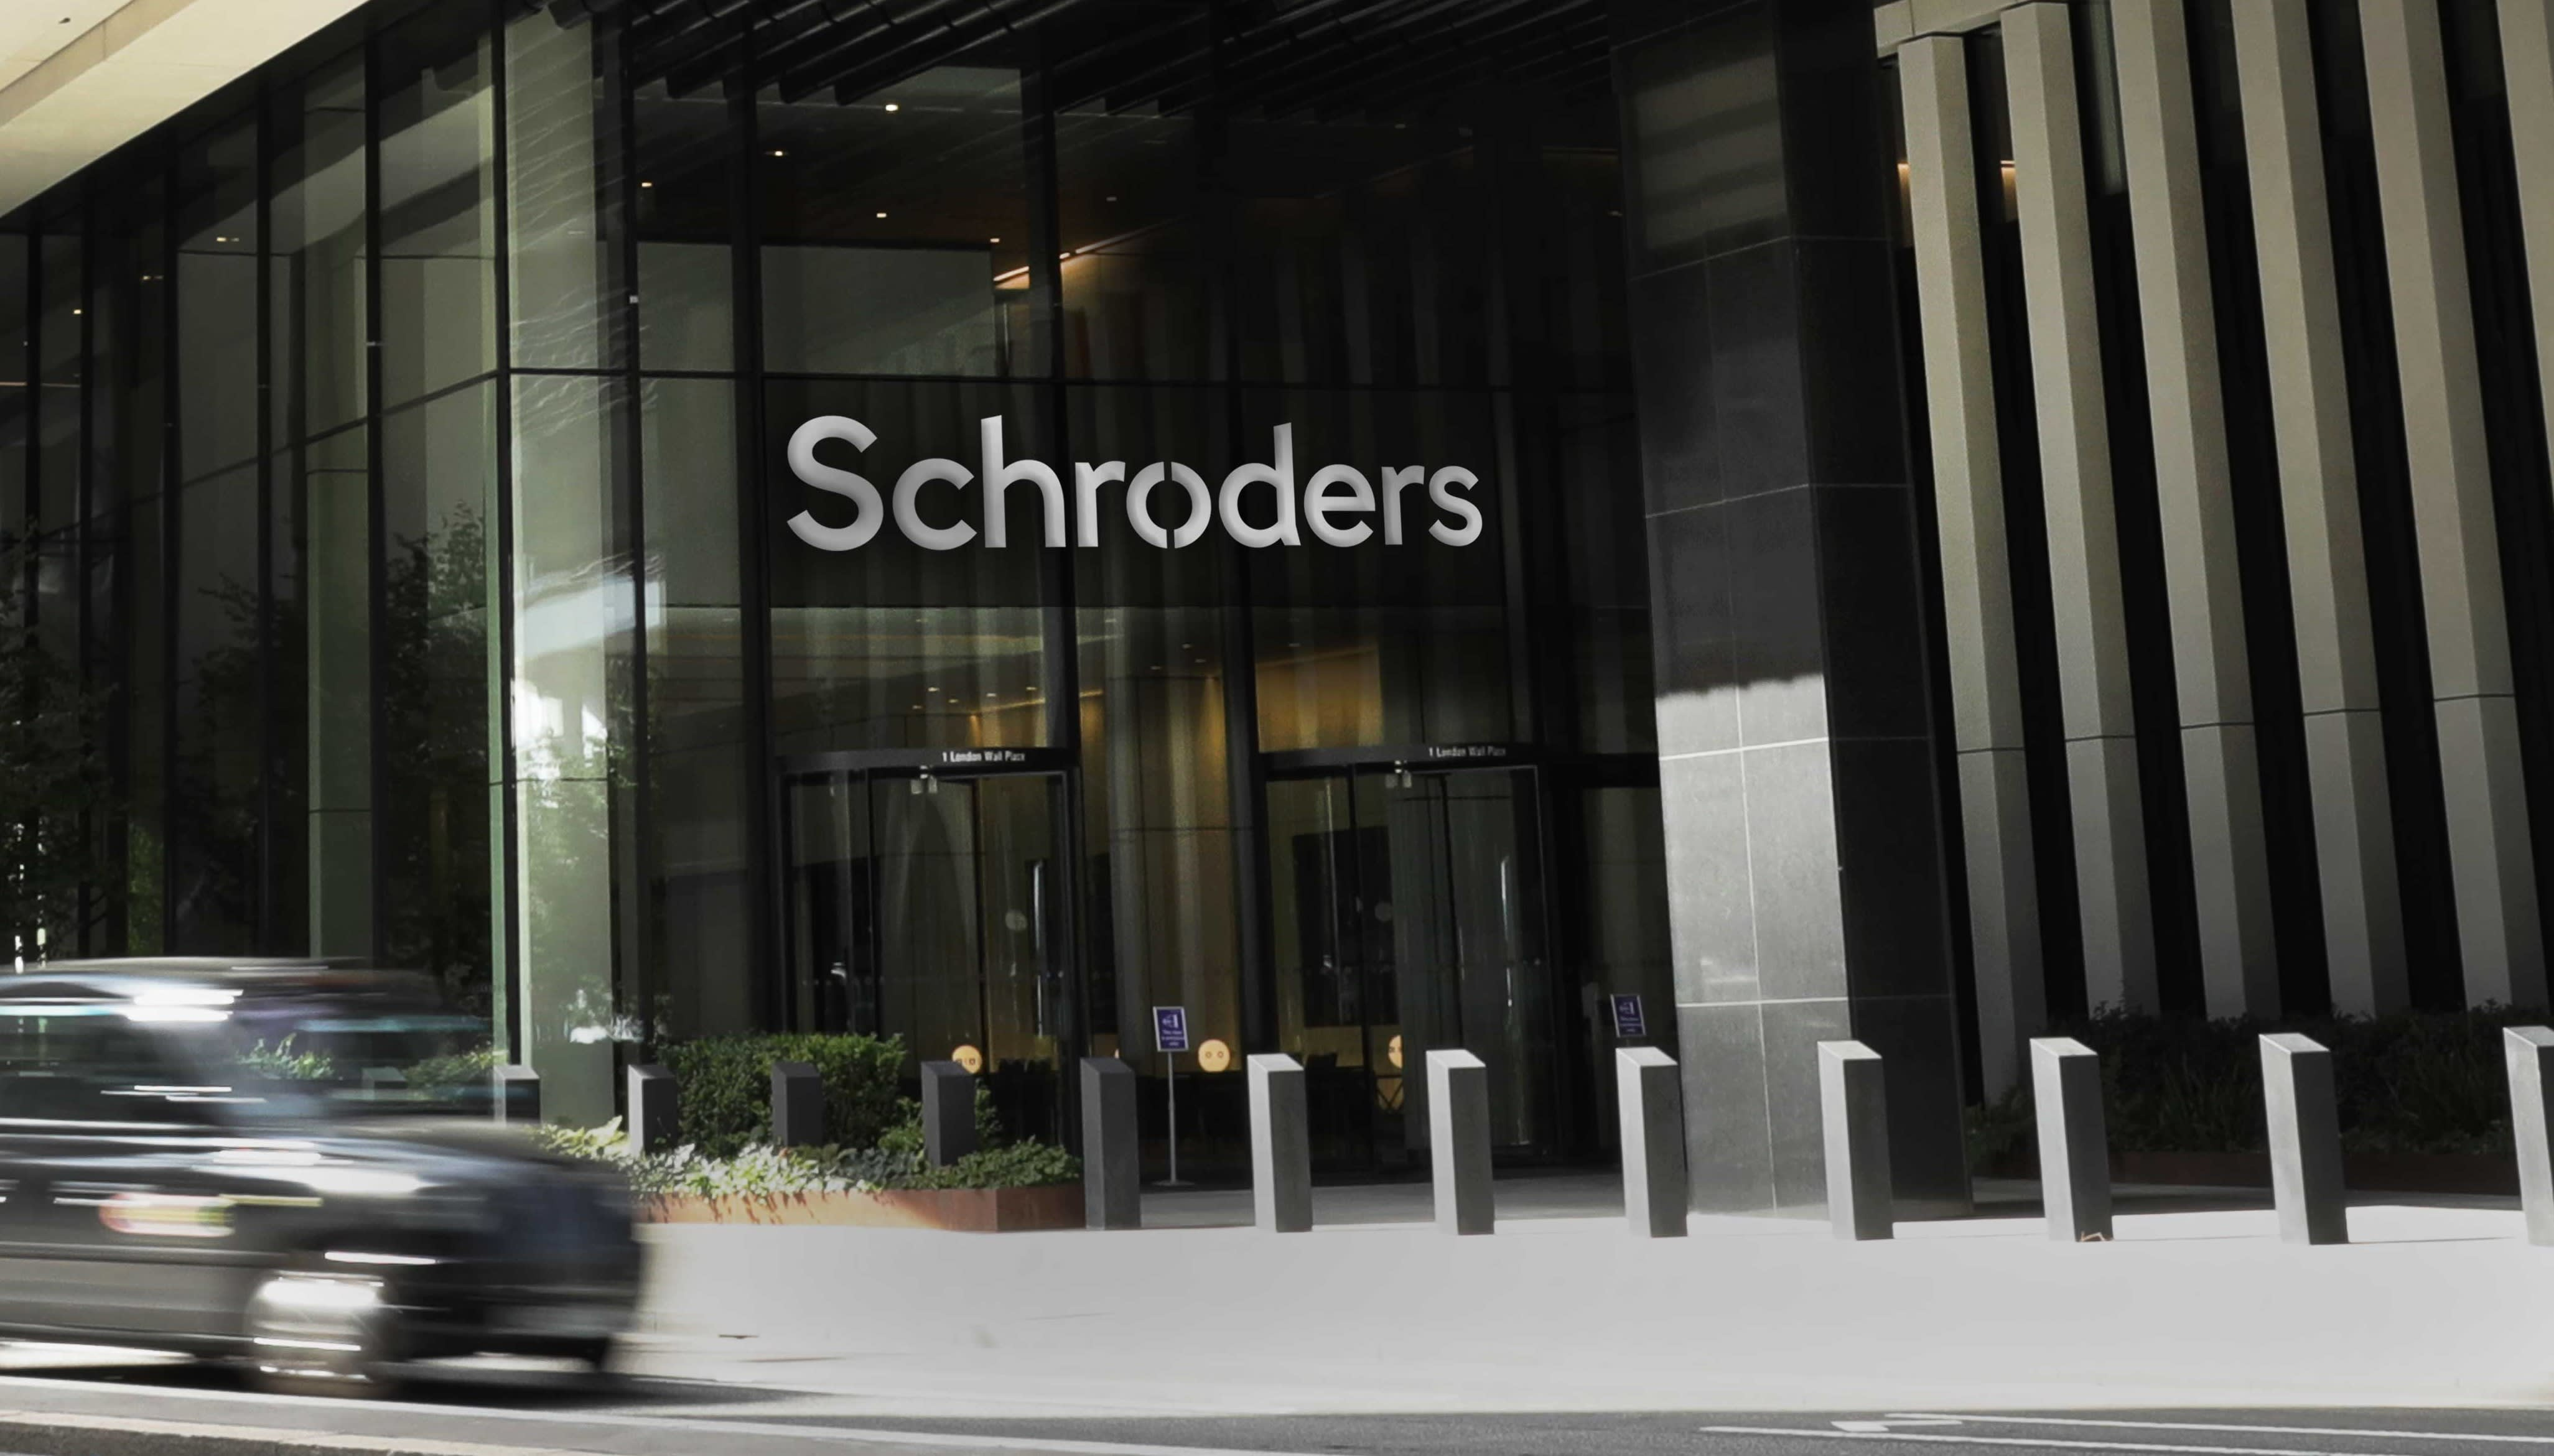 New Schroders trust will not 'fish in same pond' as Woodford